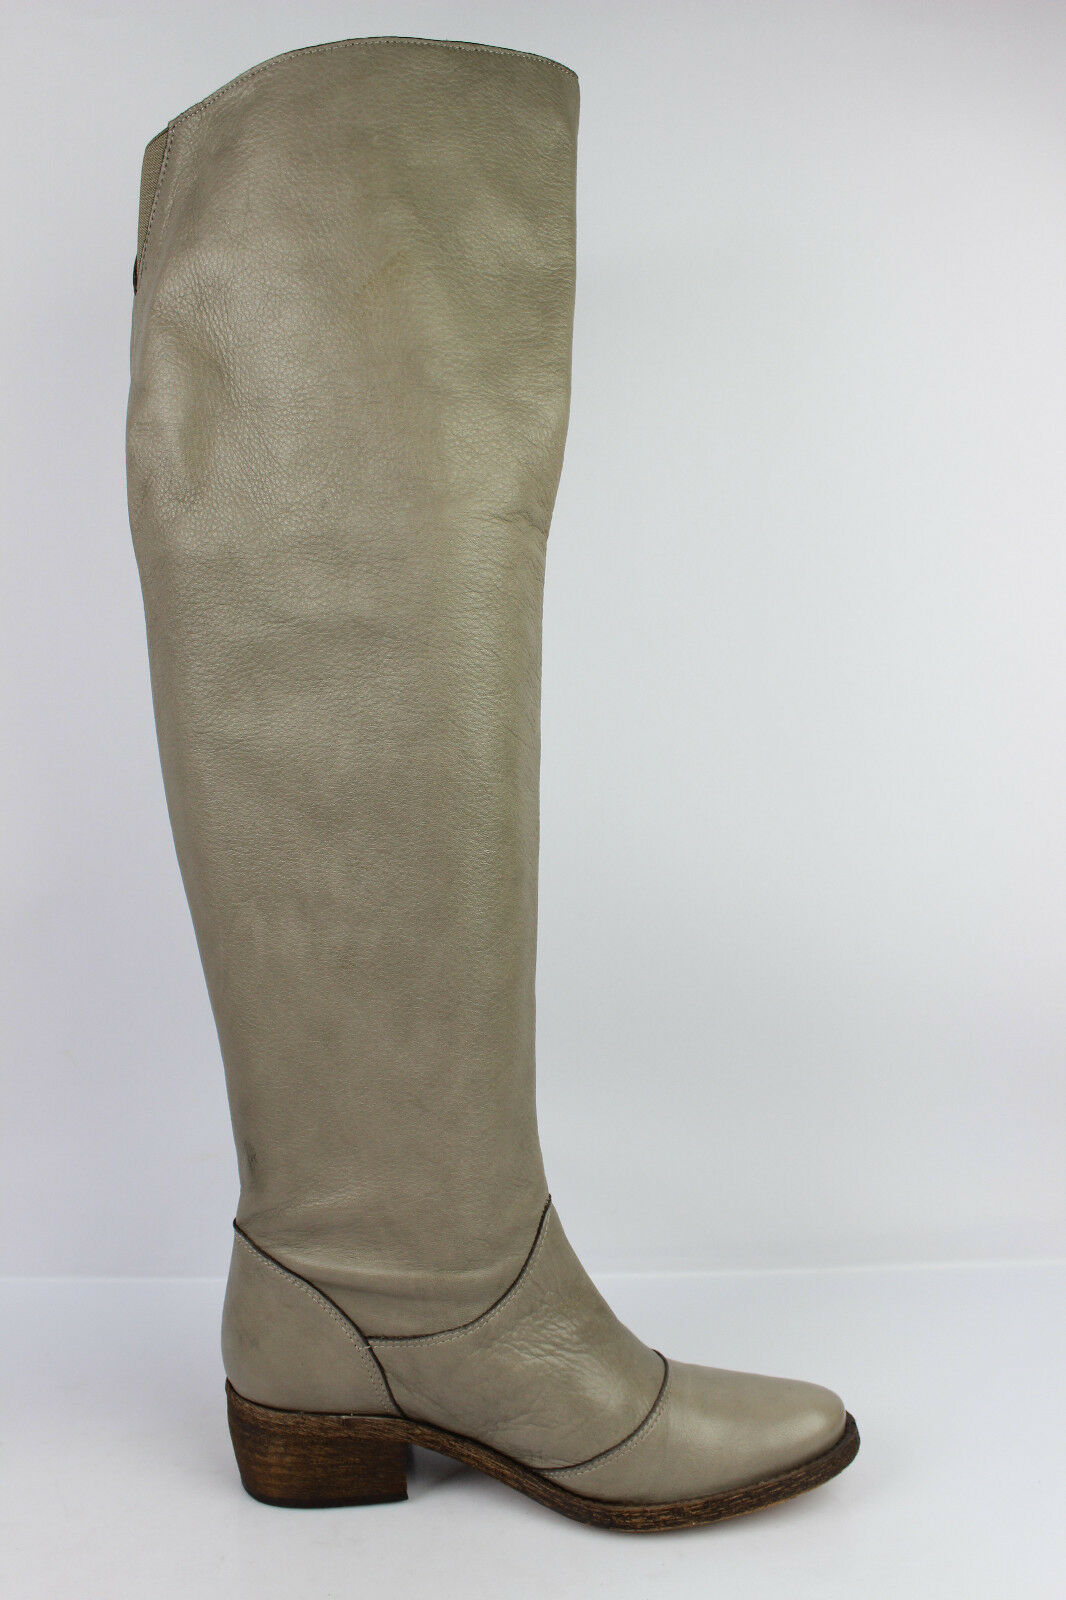 Bottes Cuissardes 1060 T Cuir Beige taupe T 1060 37 TBE 77a5c7